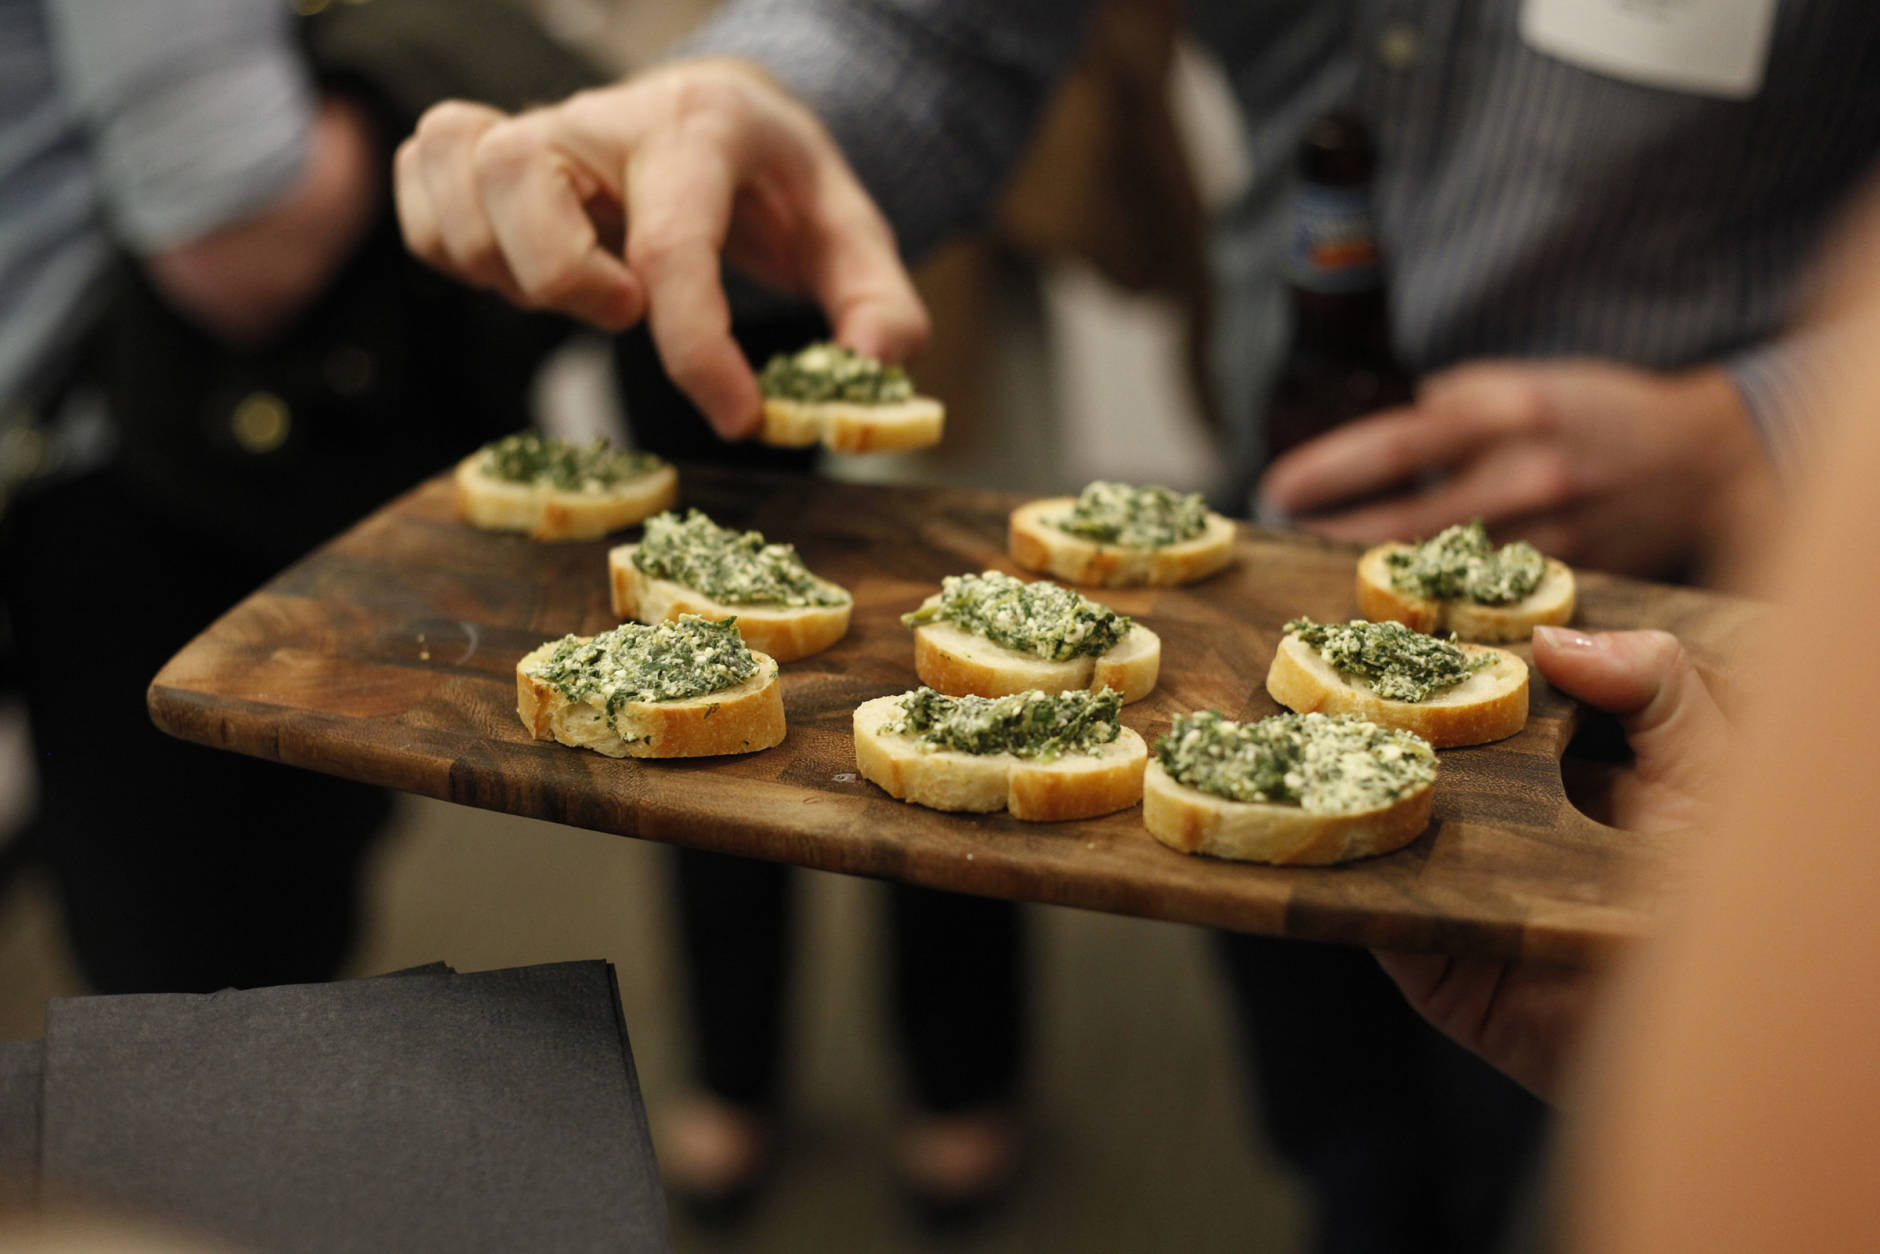 It's that time of year when whole grains, lean proteins and green juices get dumped for a steady diet of cookies, cocktails and cheese platters. But it doesn't have to mean disaster for your diet. (Thinkstock)